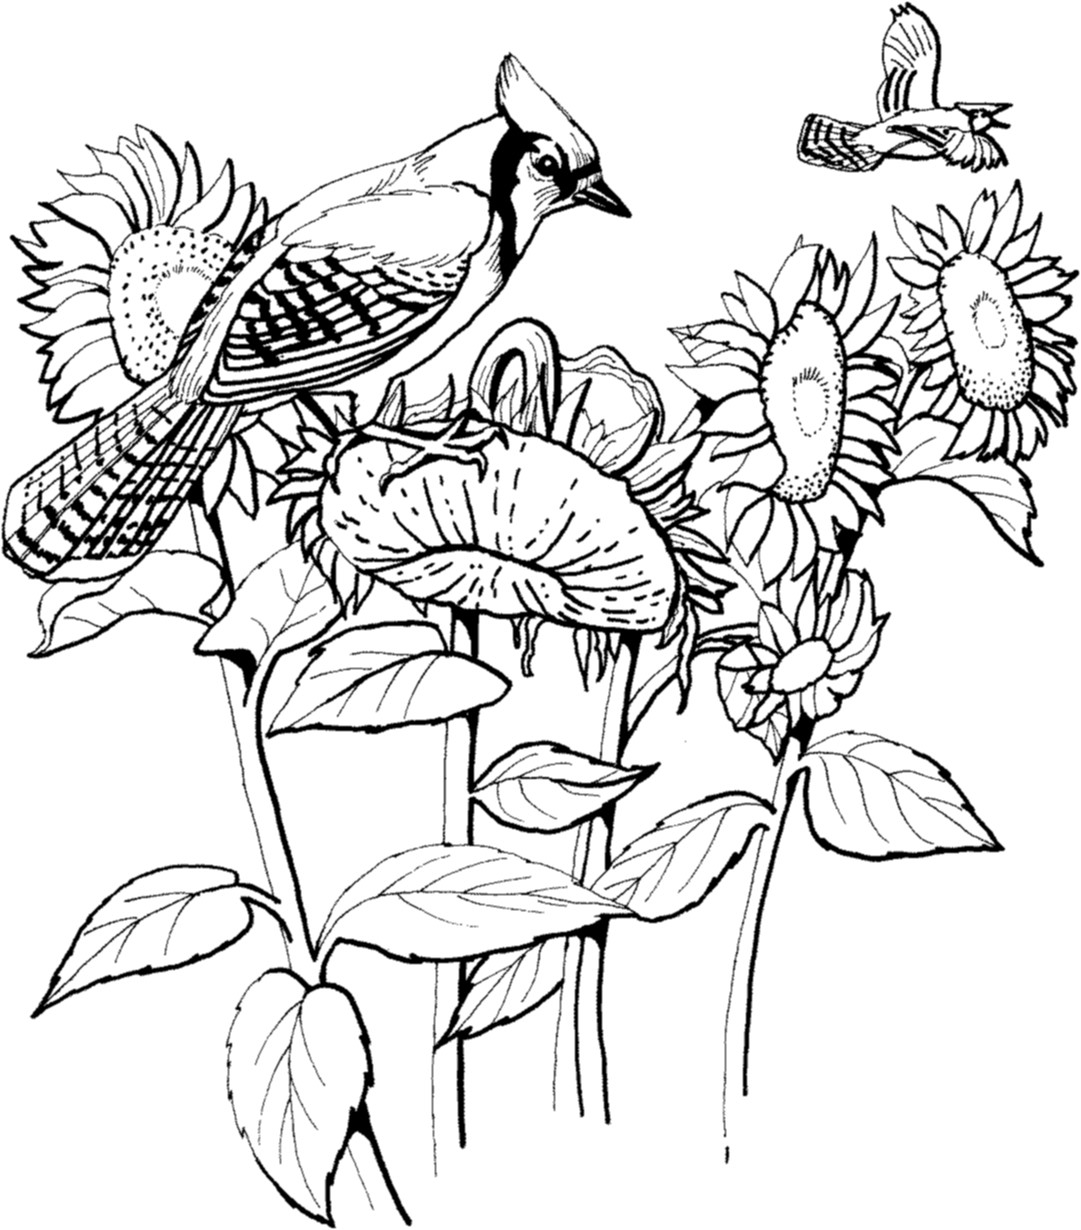 Blue Coloring Pages For Kids  Blue Jay Coloring Pages Printable Birds For Kids grig3